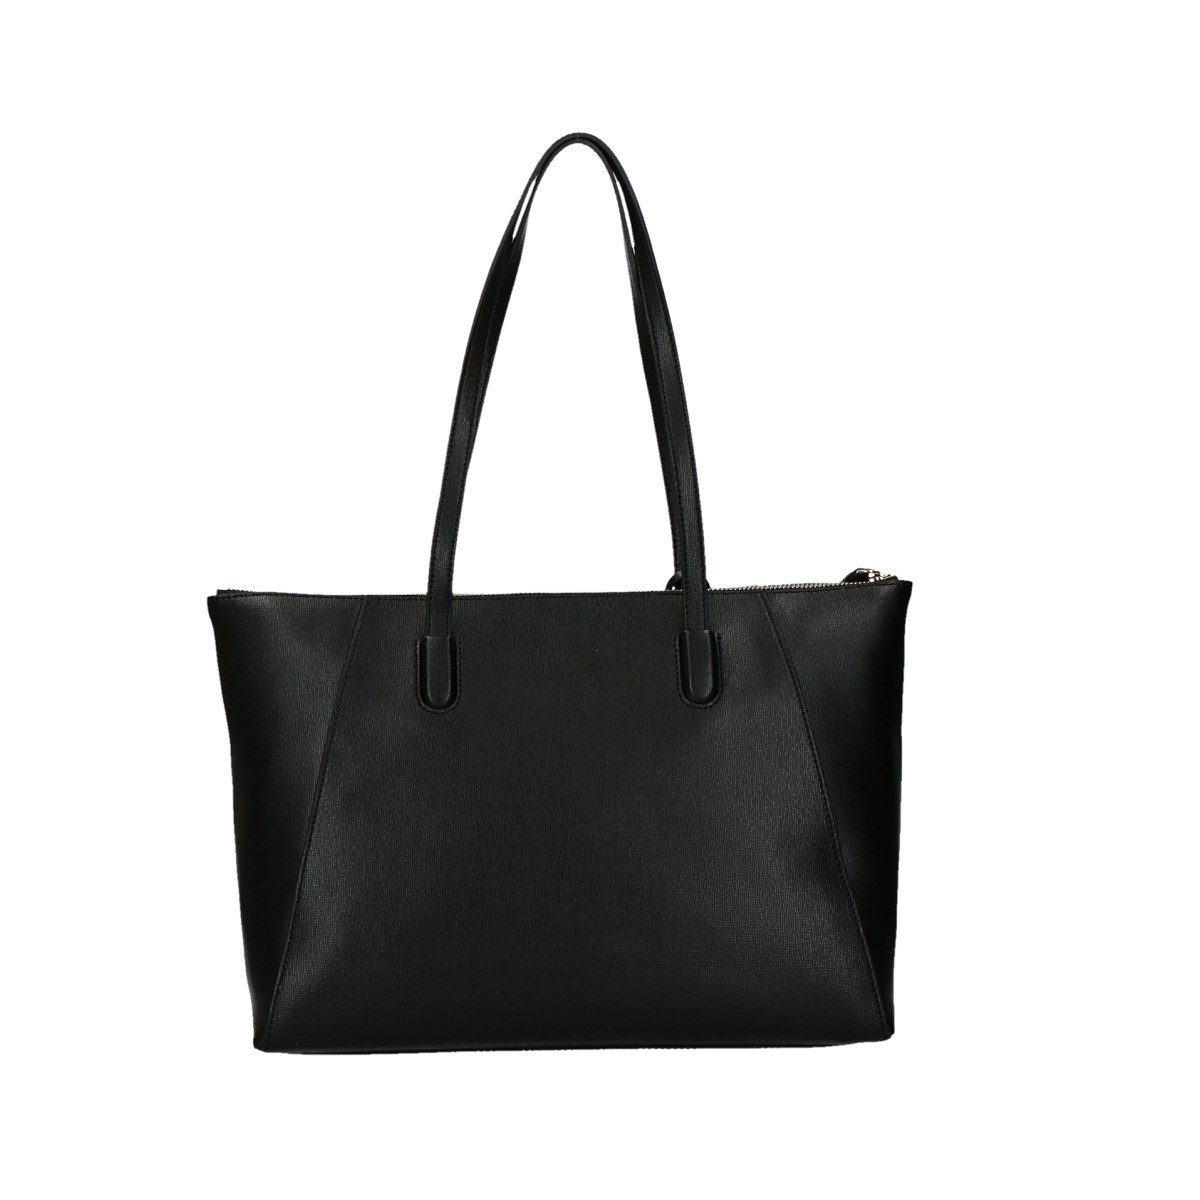 Coccinelle leather shoulder bag Clementine Soft black.